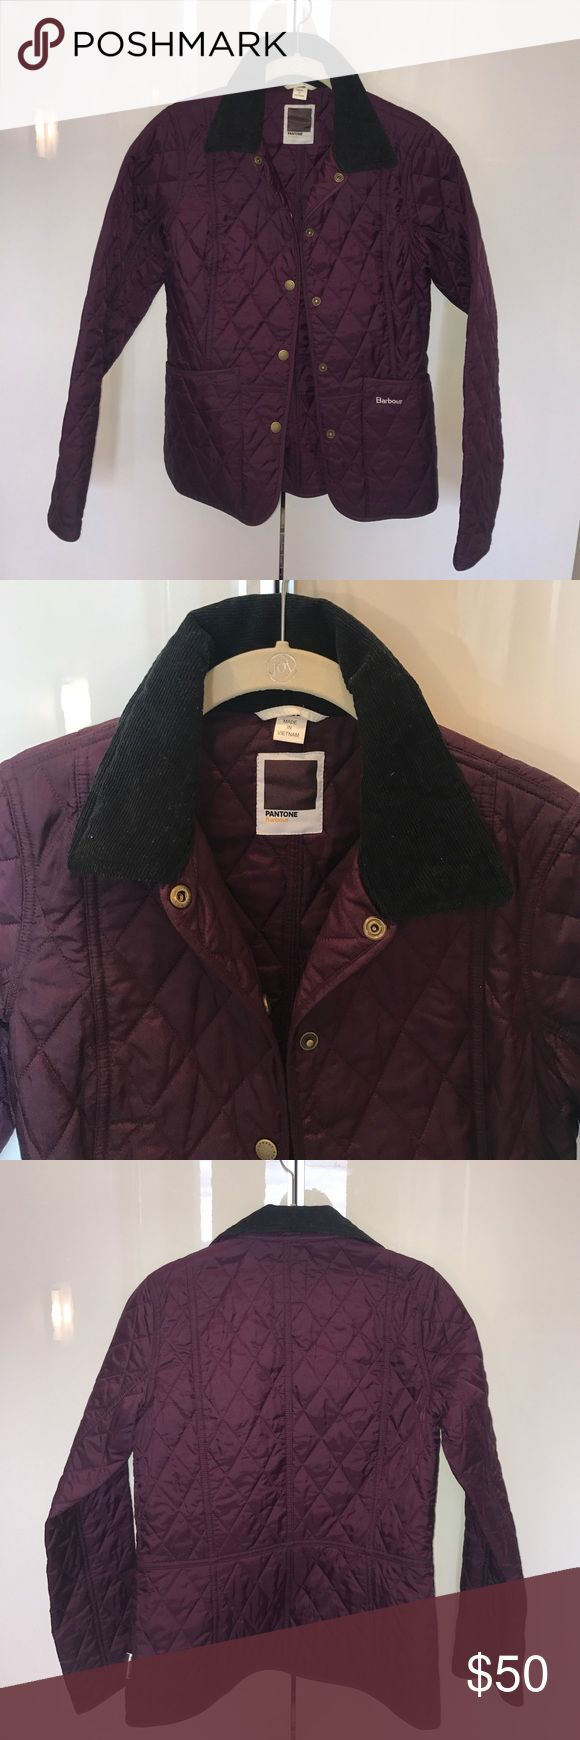 Women's purple quilted Pantone Barbour Jacket Women's Pantone Barbour spring Annandale quilted jacket. Purple. Very lightly worn and in excellent condition. Size US 4. Barbour Jackets & Coats